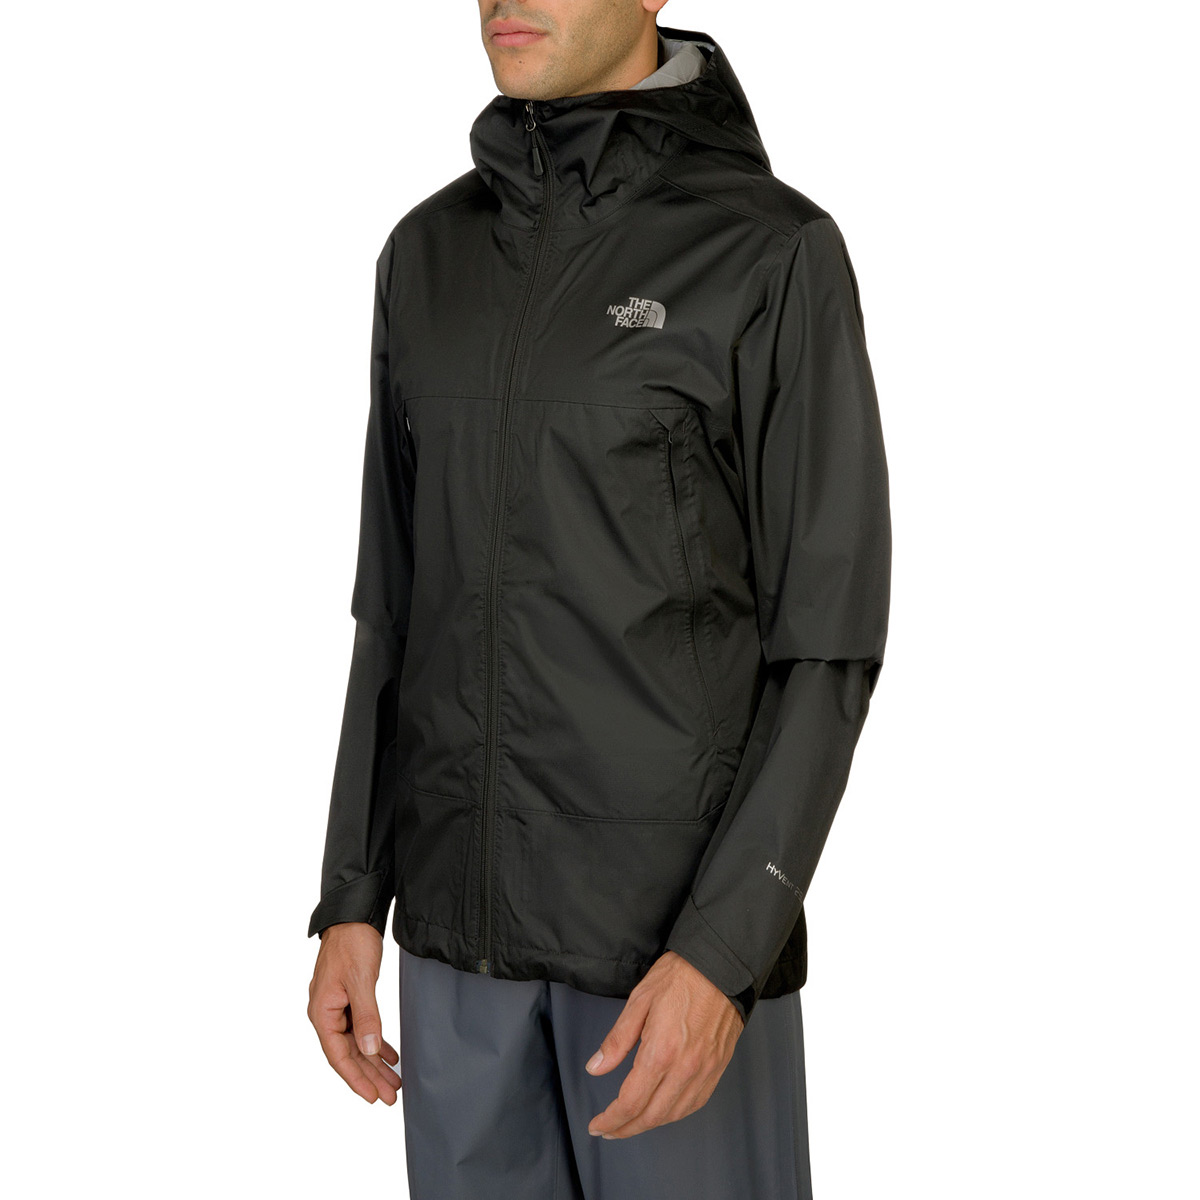 The North Face Pursuit Jacket T0A8ALJK3, Blousons homme